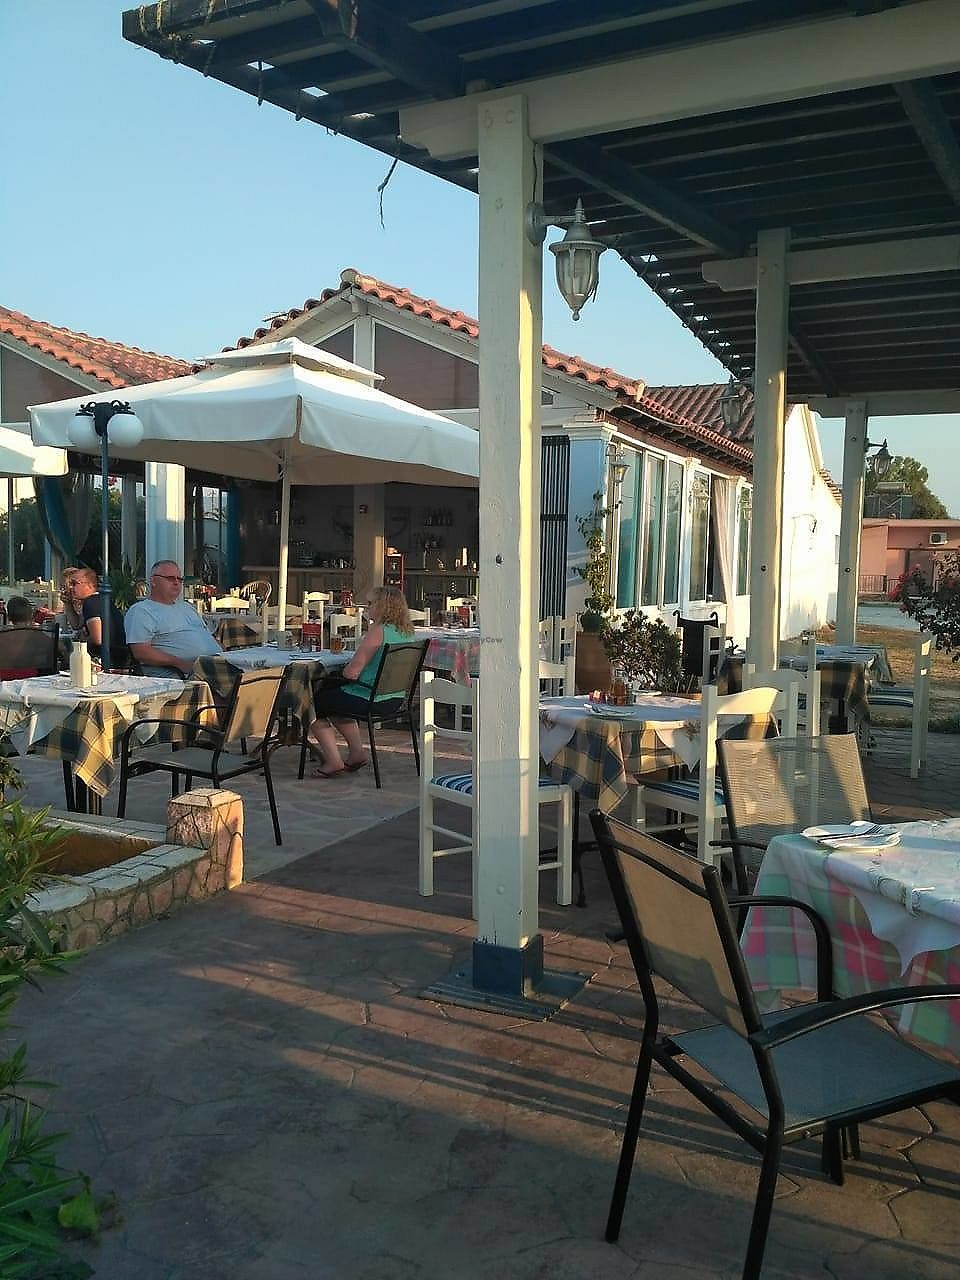 """Photo of Taverna Kavvadias  by <a href=""""/members/profile/aga.mika"""">aga.mika</a> <br/>The outside sitting <br/> September 6, 2017  - <a href='/contact/abuse/image/99021/301435'>Report</a>"""